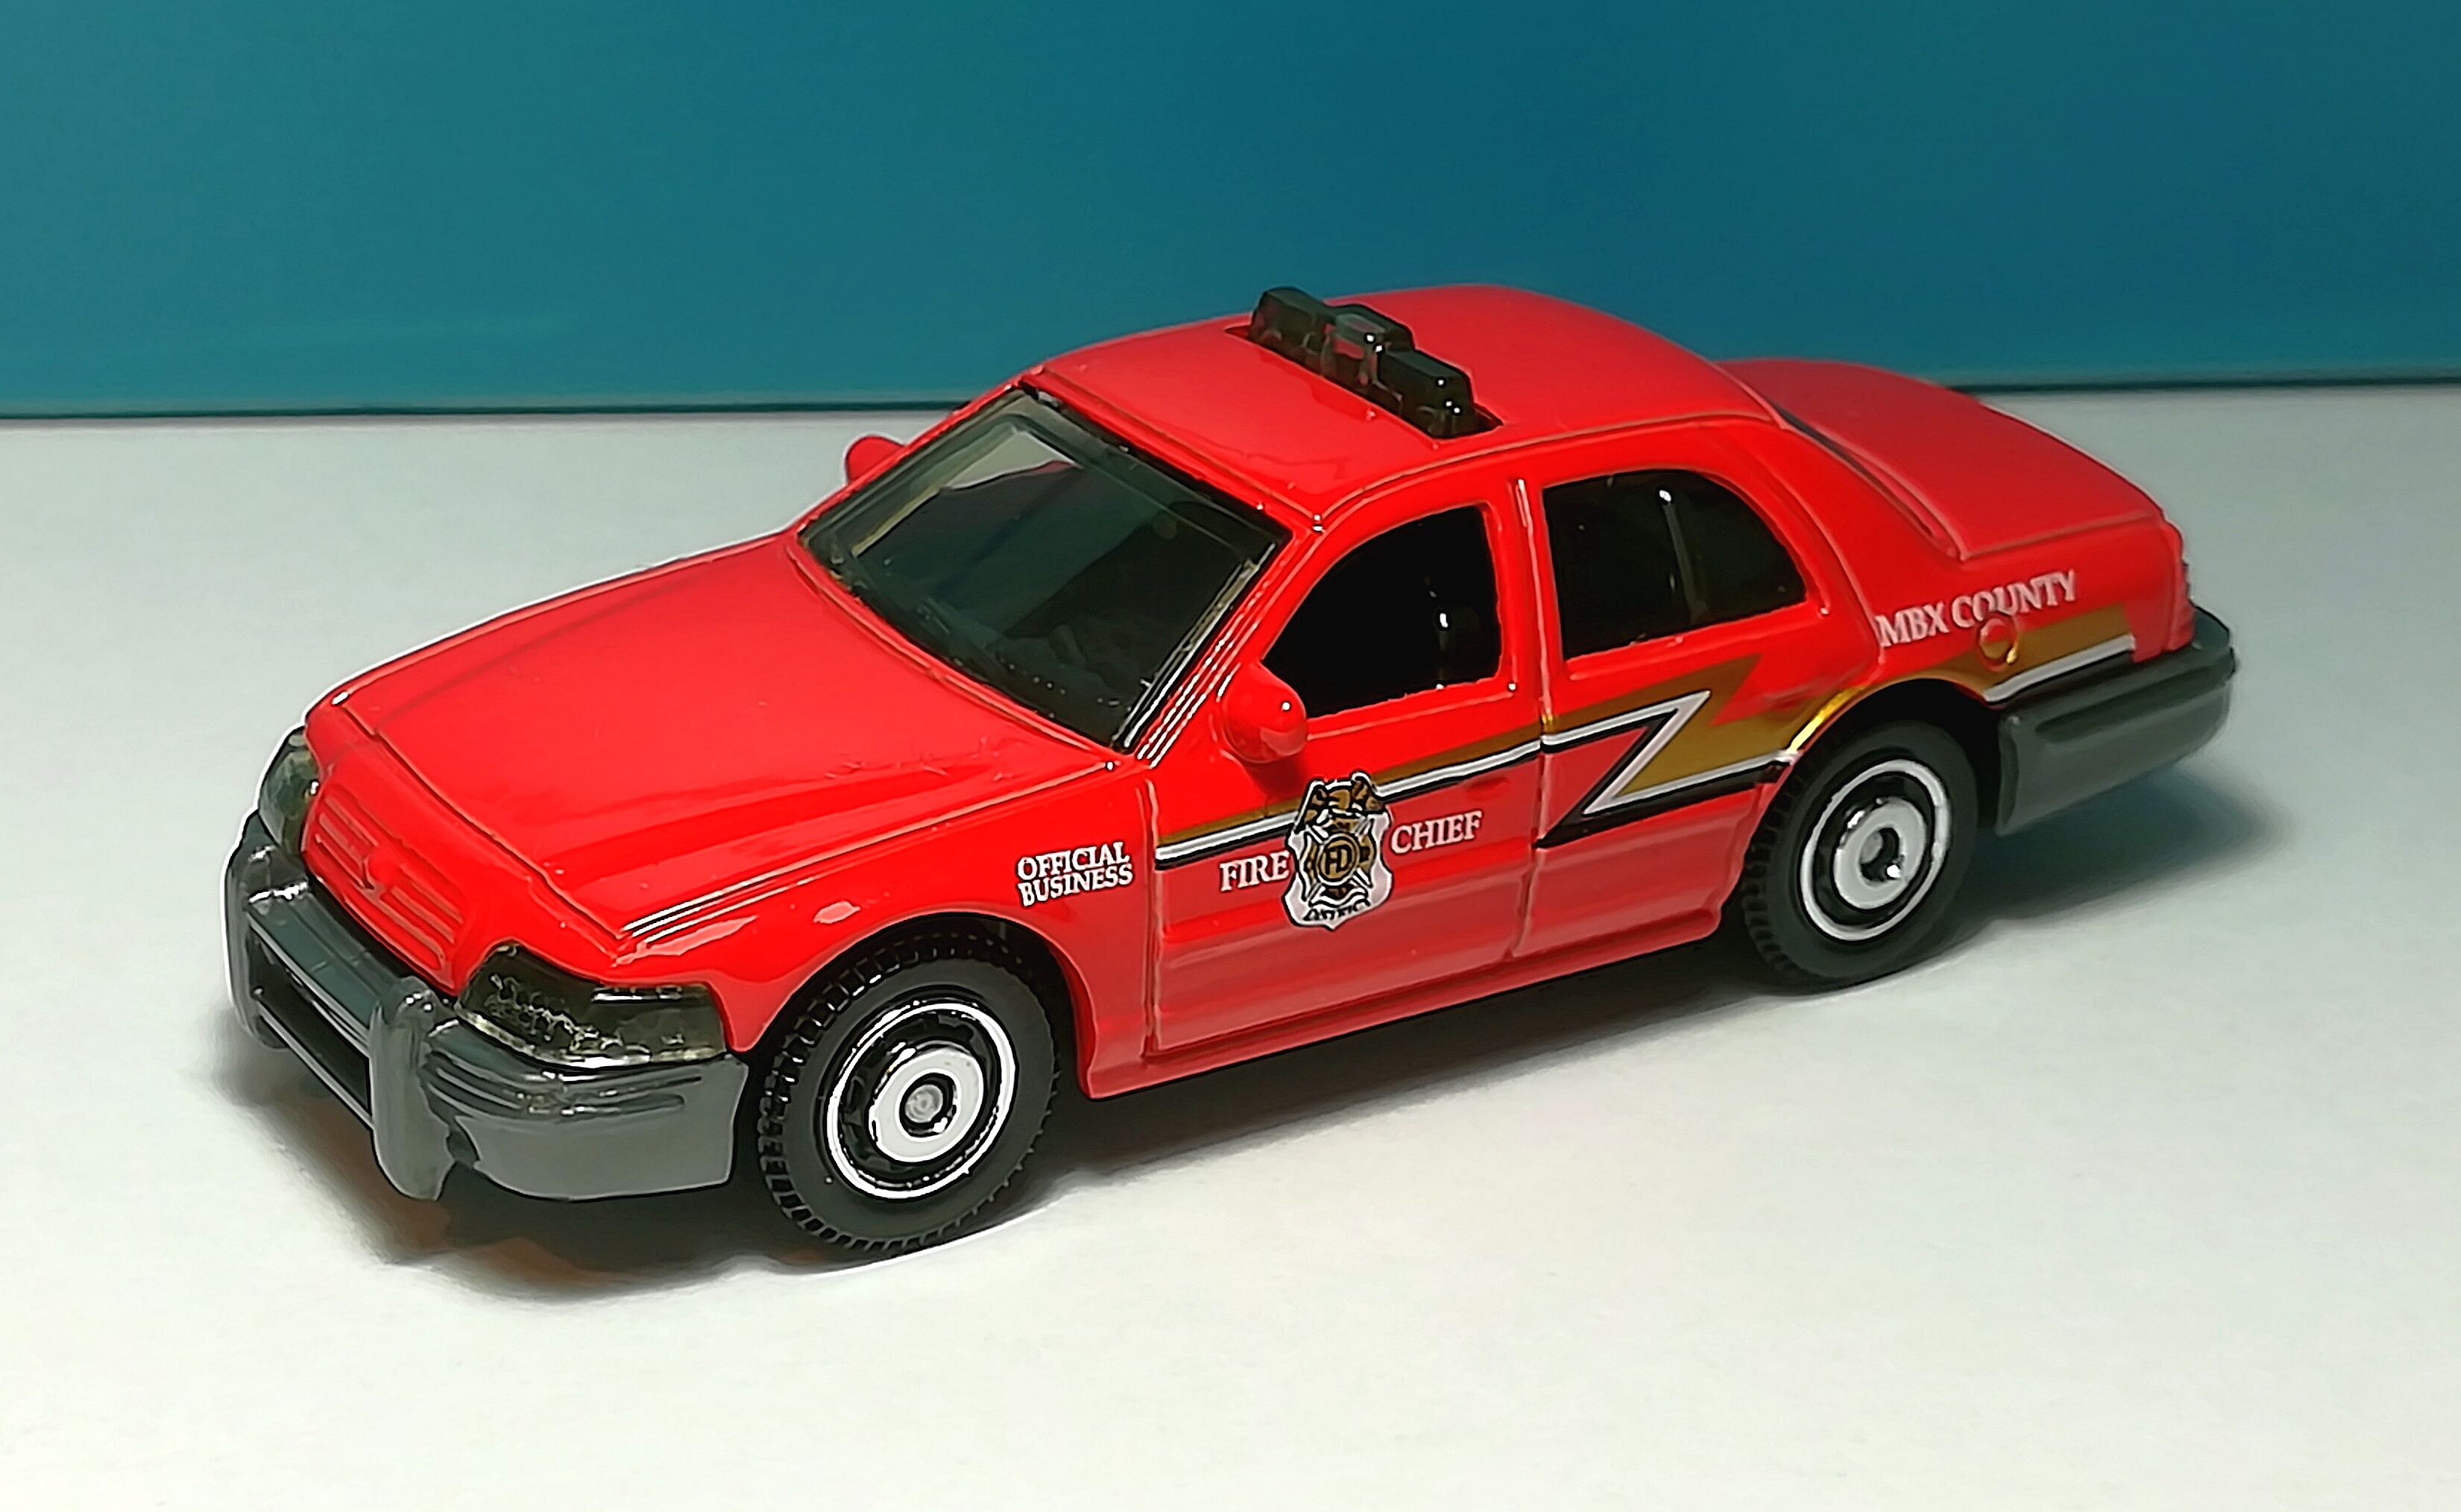 2006 Ford Crown Victoria Police Car Matchbox Cars Wiki Fandom 1980 Coupe Thailand New Lightbar Instead Taxi Sign Part Of The Window Base Codes K35